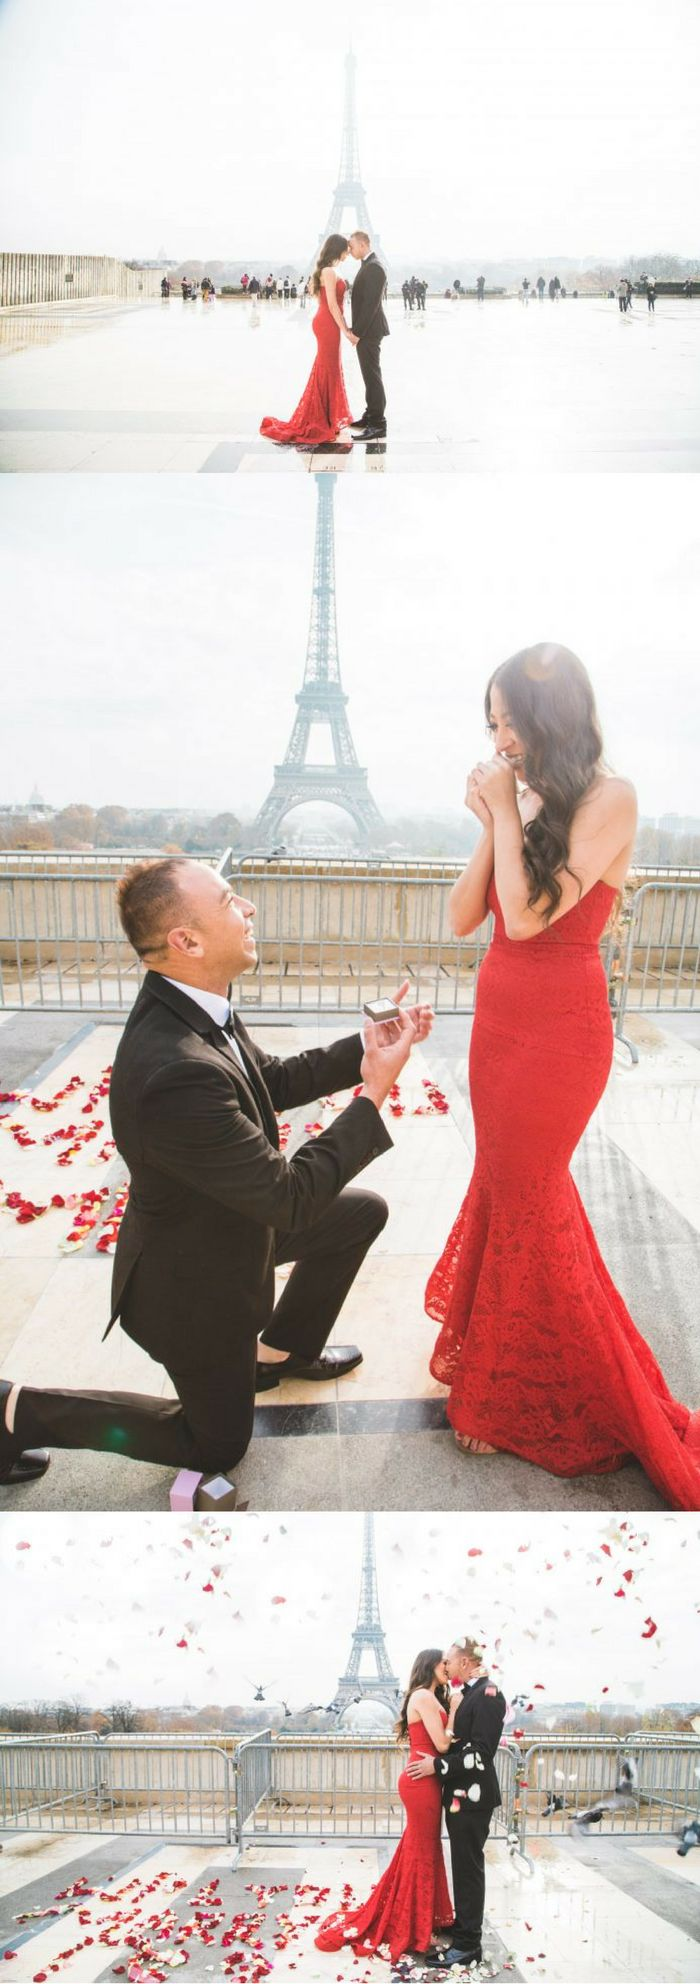 He asked her to marry him in front of the Eiffel Tower, and it's absolutely amazing! This is the best destination proposal ever.